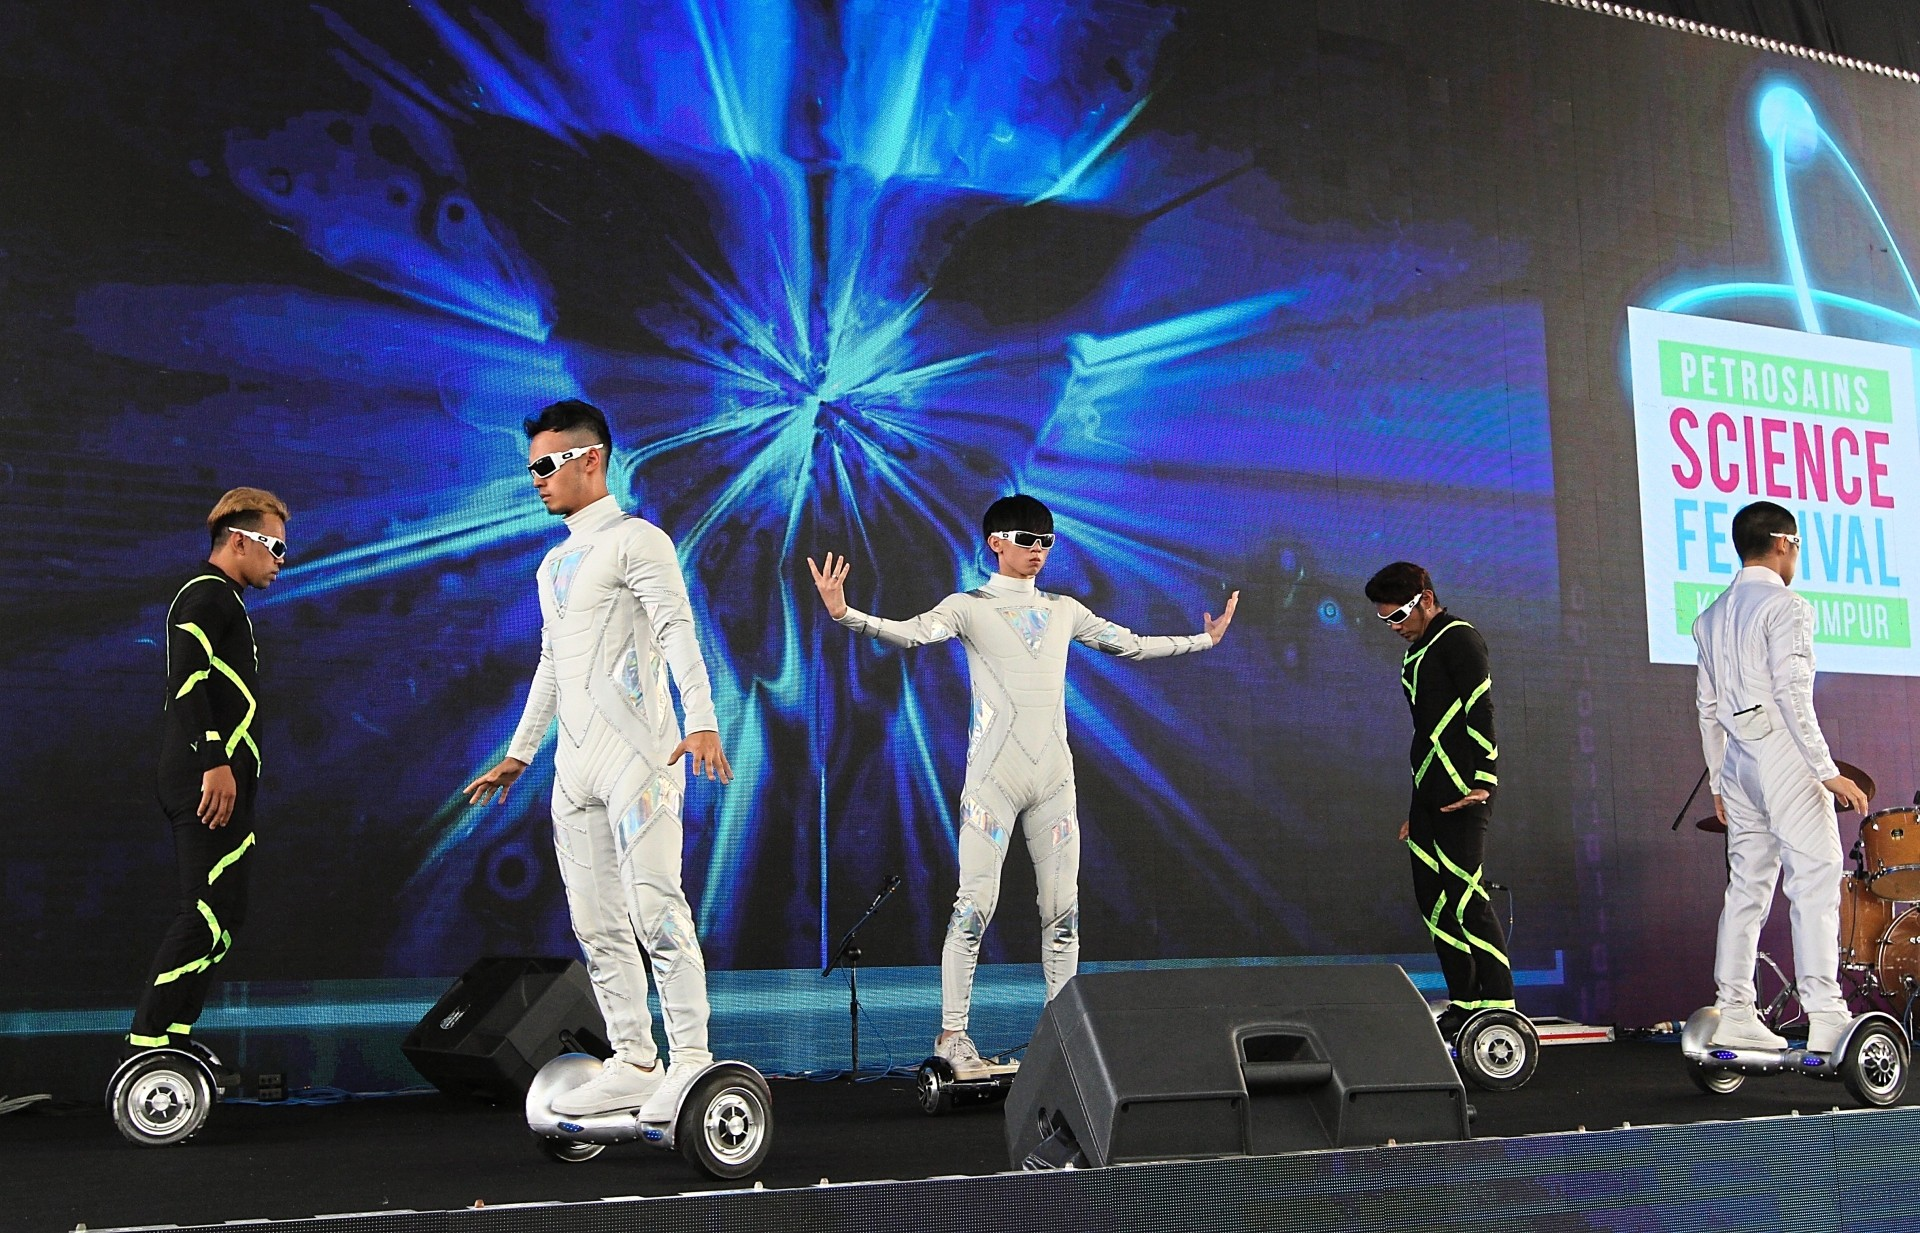 Performers during the launch of the science festival.